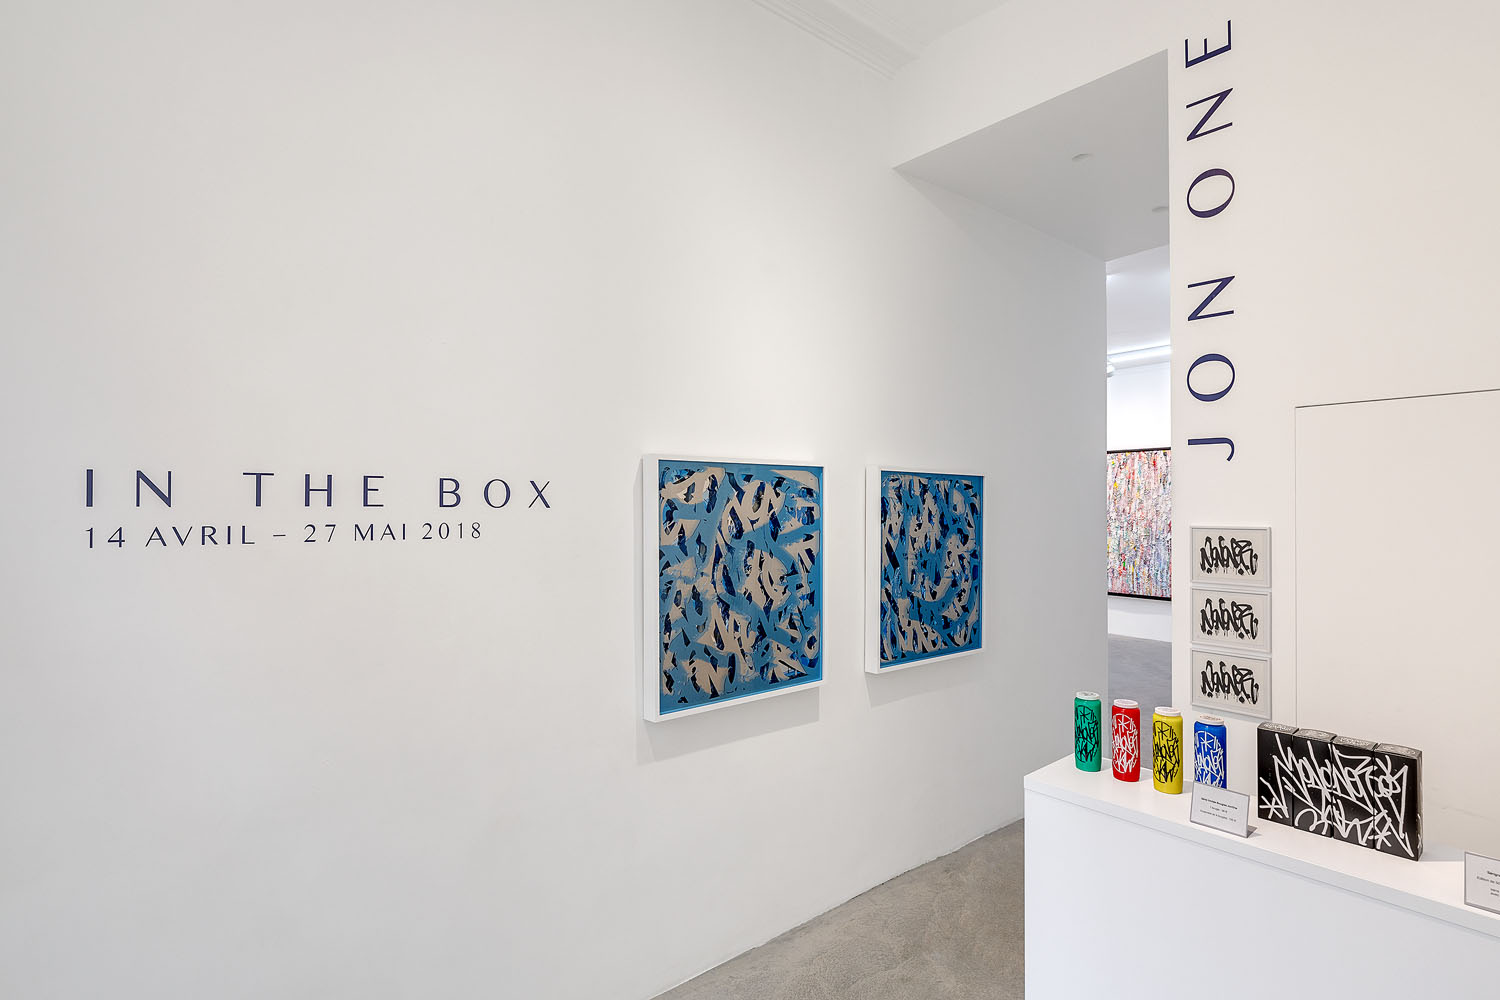 JonOne, In The Box, Galerie Rabouan Moussion